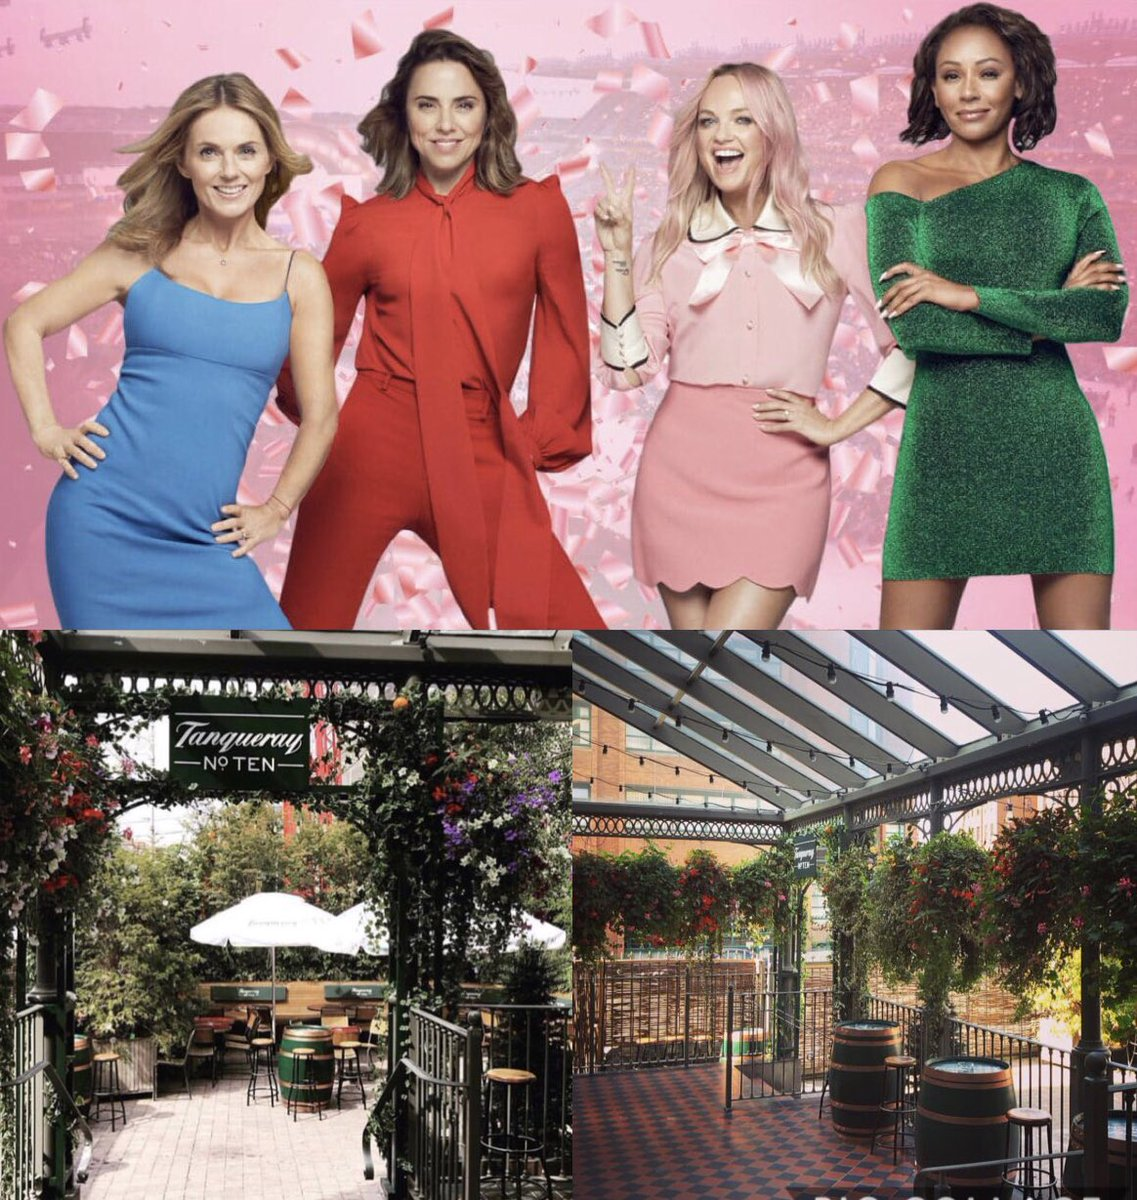 We officially launch our BBQ this Thursday 🙌🏻 We will also be hosting our customer evening with complimentary food / drinks. If you would like to attend simply email hello@odeon.ie  PS; we will also be giving away 2 tickets to the Spice Girls in Croke Park on the evening 😍 https://t.co/472b0Nf47P